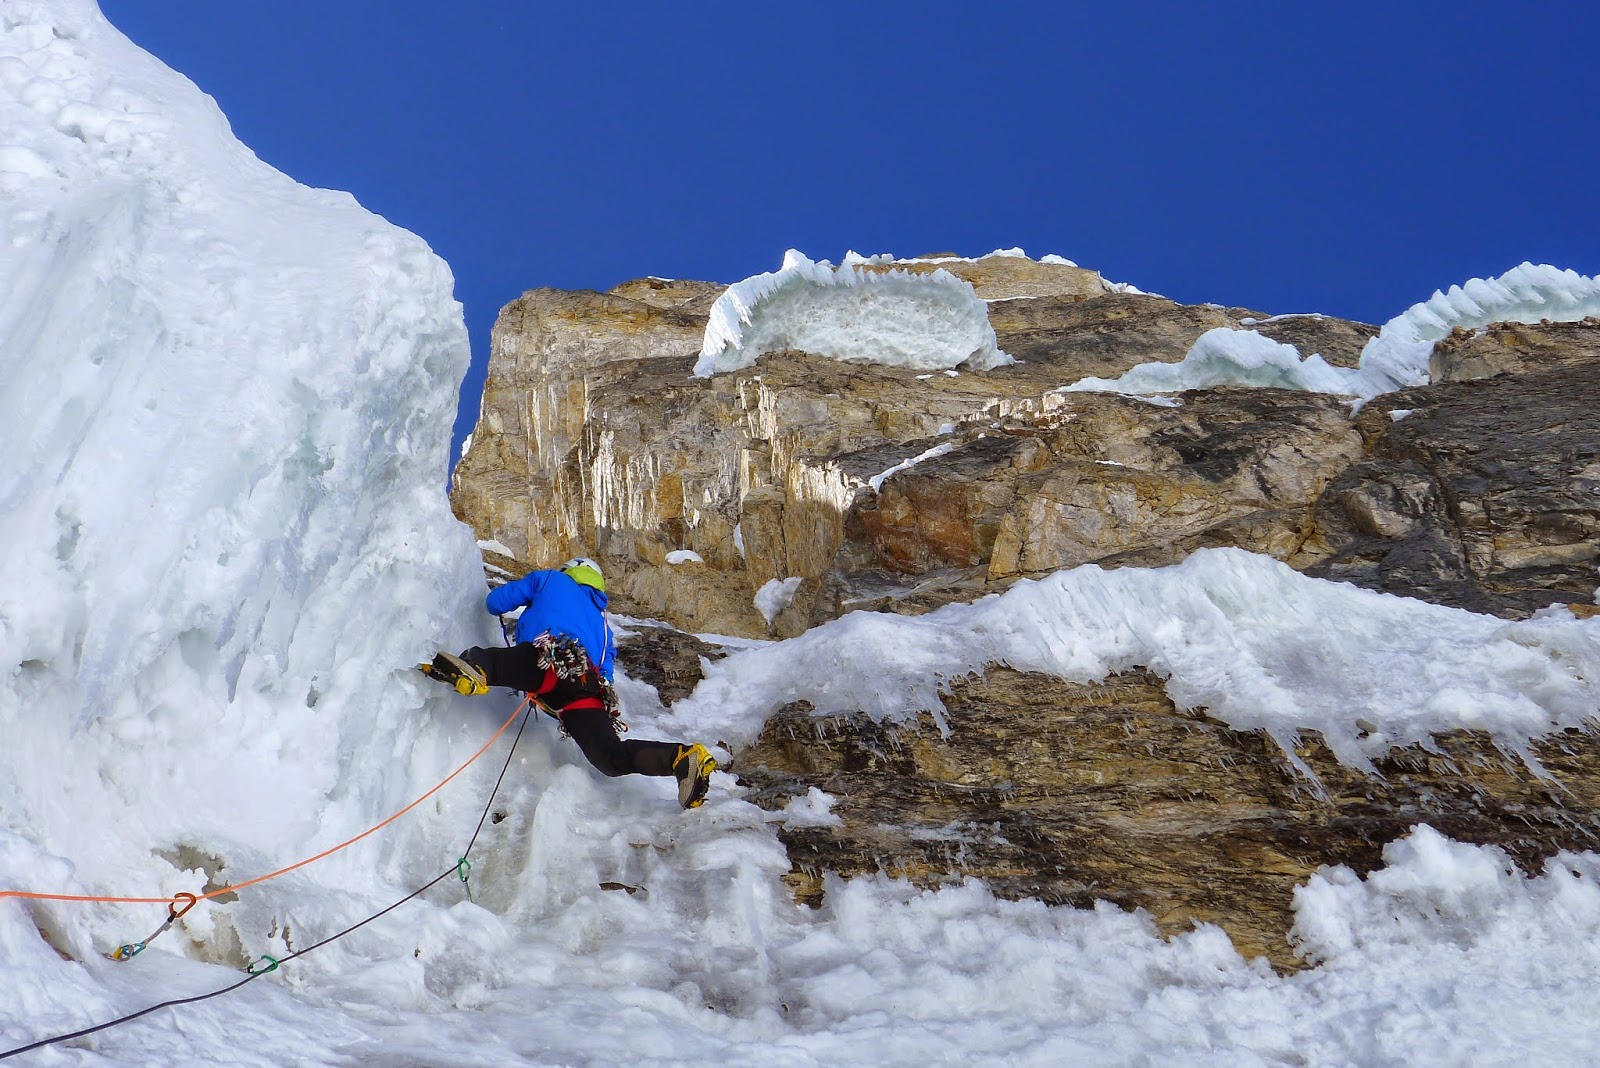 """ Looking for the void "" , 900m, M7, grade 6, R, face ouest directe au SIULA CHICO (6265m, Pérou) en vidéo"